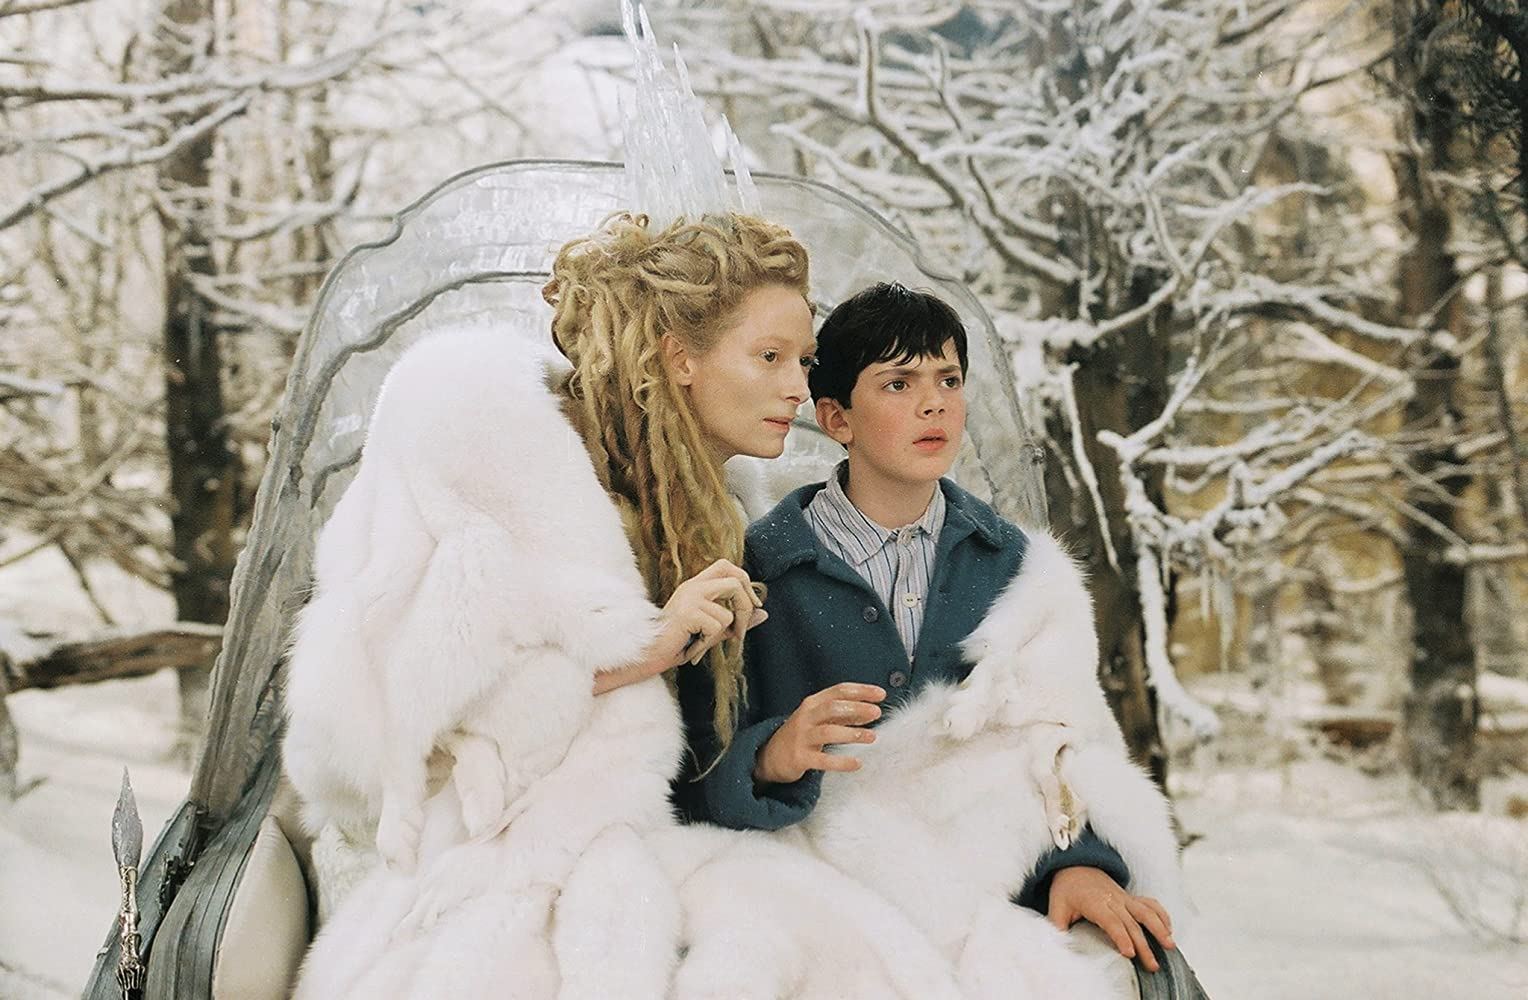 Tilda Swinton and Skandar Keynes in The Chronicles of Narnia: The Lion, the Witch and the Wardrobe (2005)